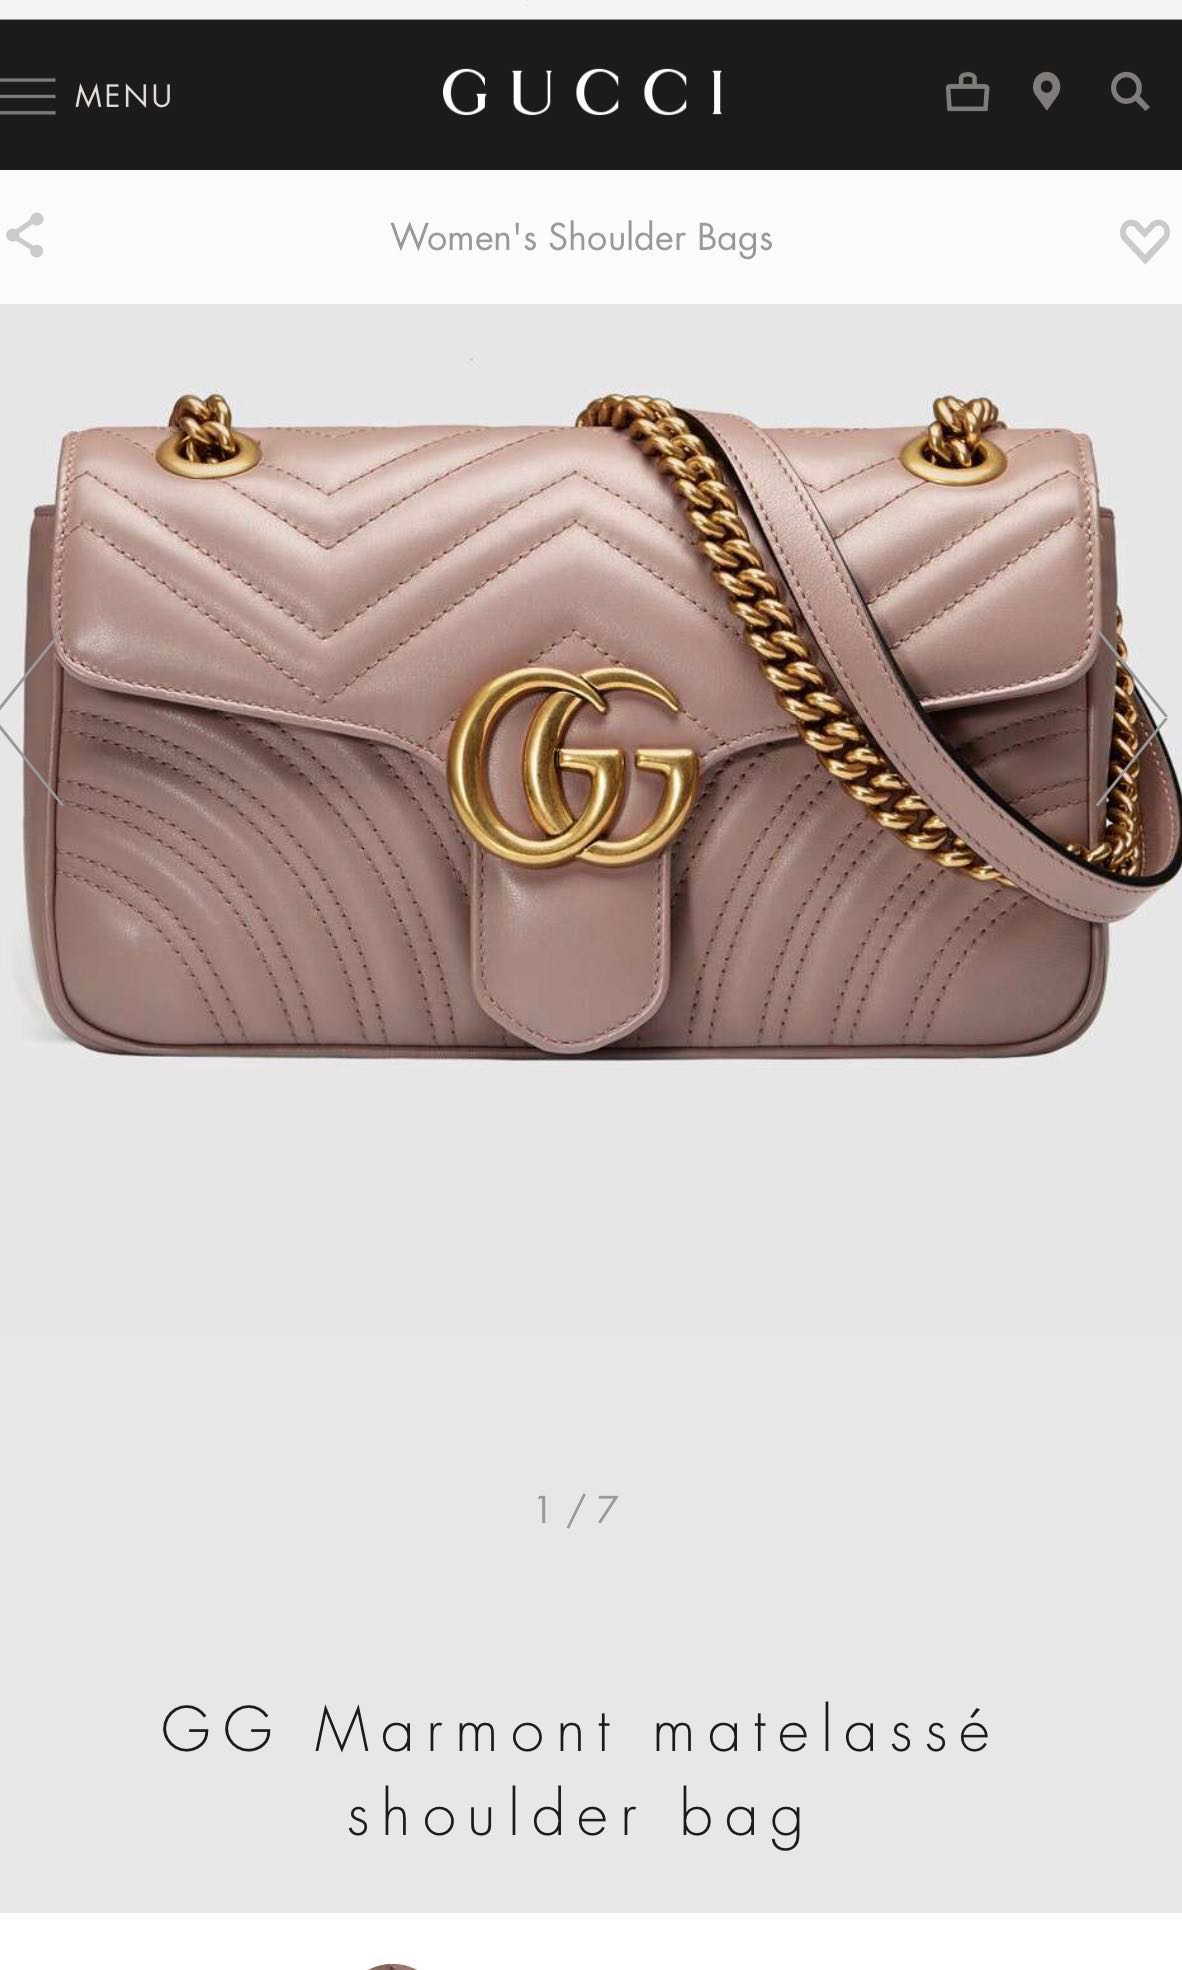 076b0e2840fec4 Gucci Marmont matelasse shoulder bag small in dusty pink, Luxury ...